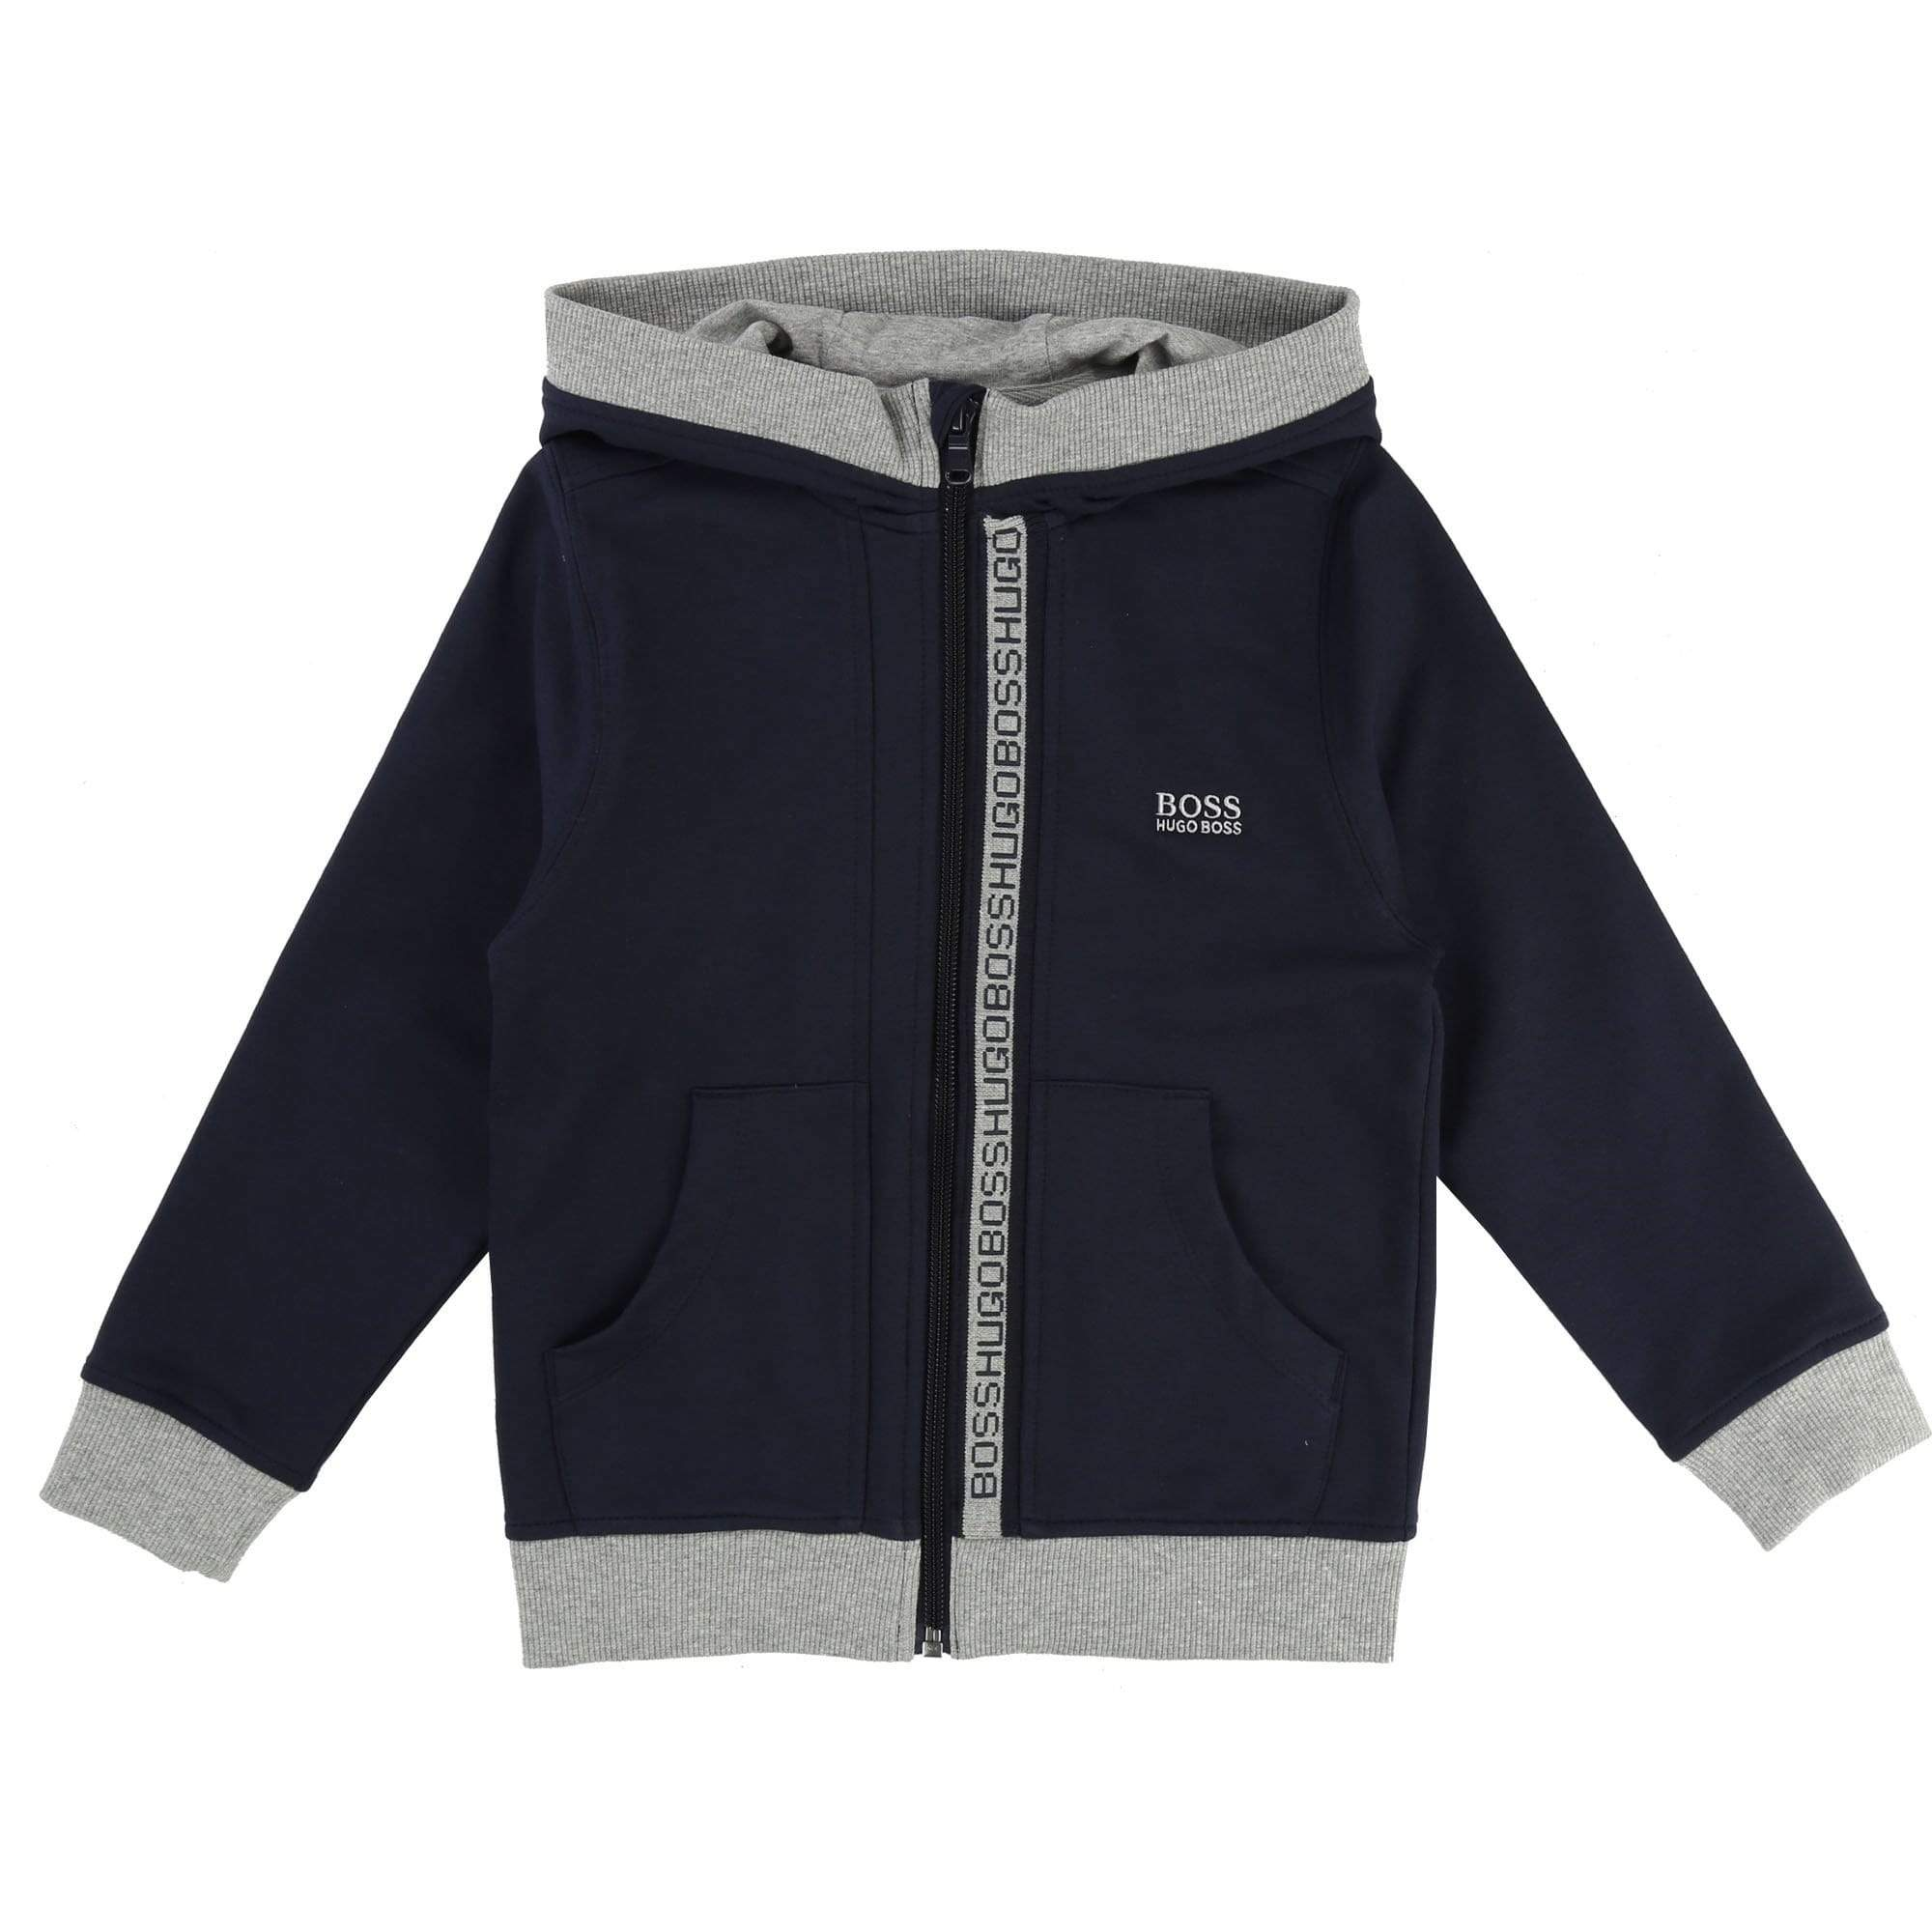 Hugo Boss Track Jacket Navy (4715551195267)